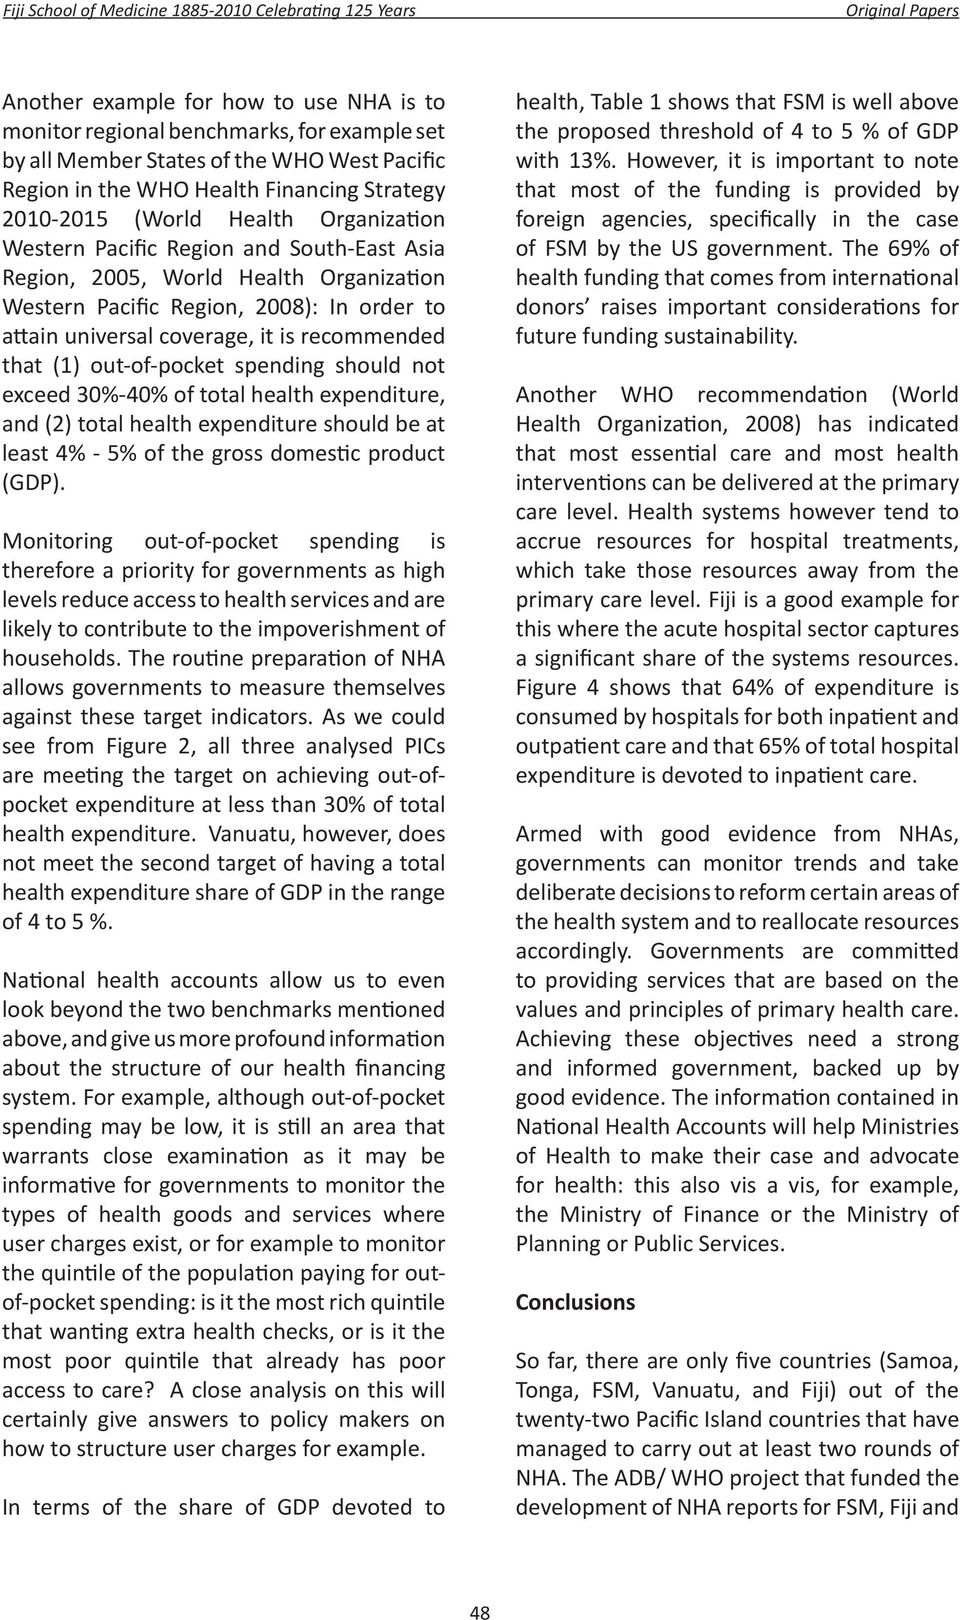 out-of-pocket spending should not exceed 30%-40% of total health expenditure, and (2) total health expenditure should be at least 4% - 5% of the gross domestic product (GDP).